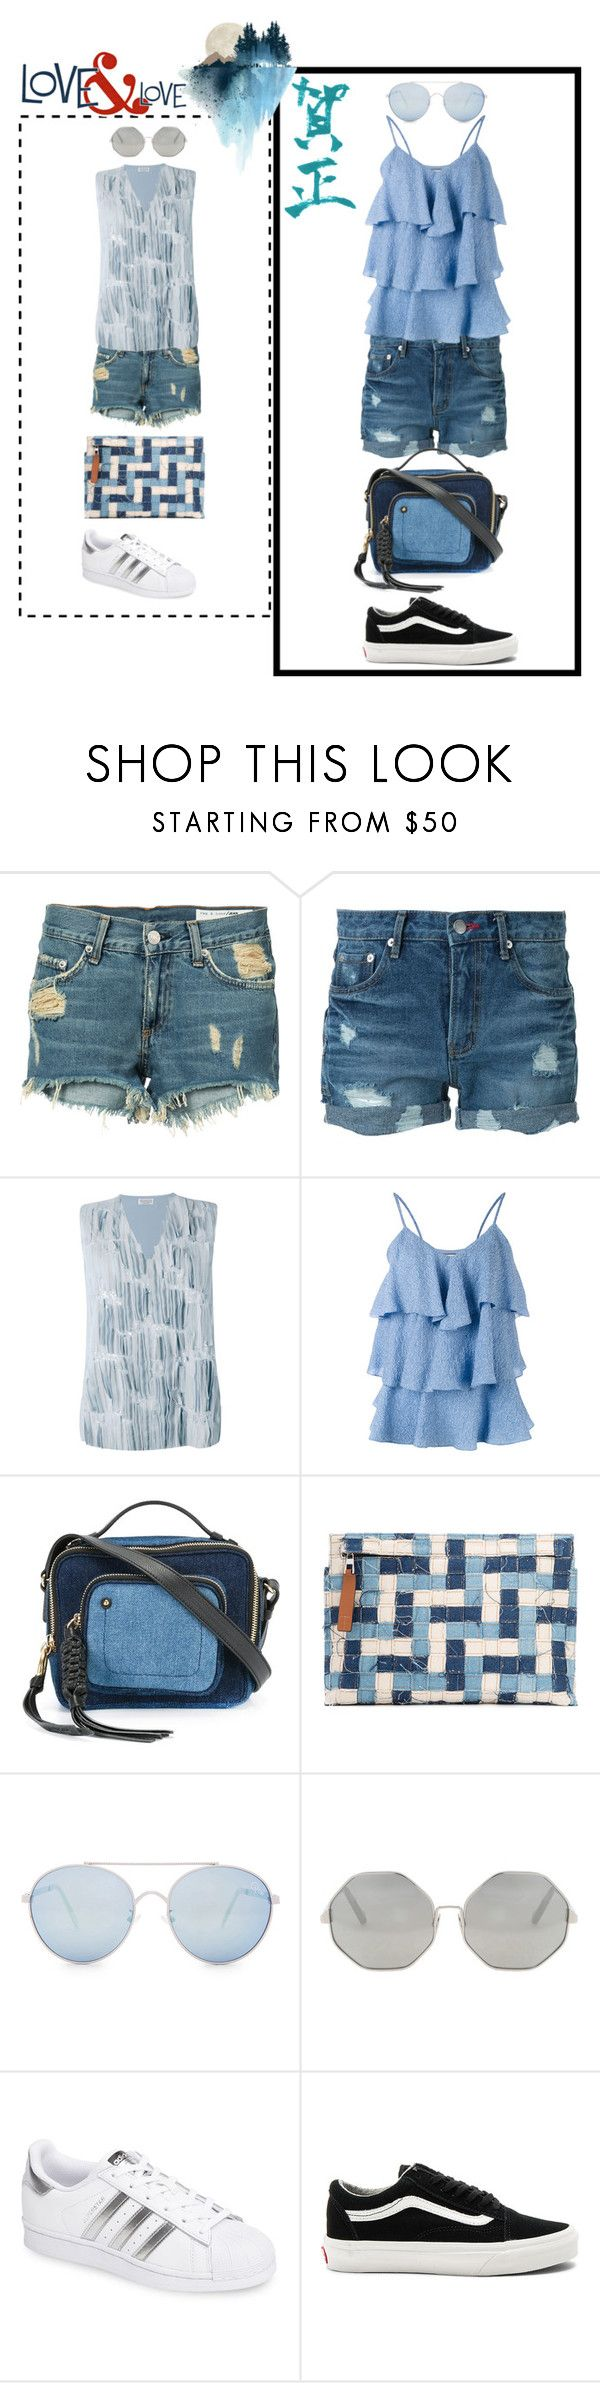 """""""fashion kart¶"""" by racheal-taylor ❤ liked on Polyvore featuring rag & bone/JEAN, Guild Prime, Brunello Cucinelli, Paul & Joe, See by Chloé, Loewe, Quay, Cutler and Gross, adidas and Vans"""